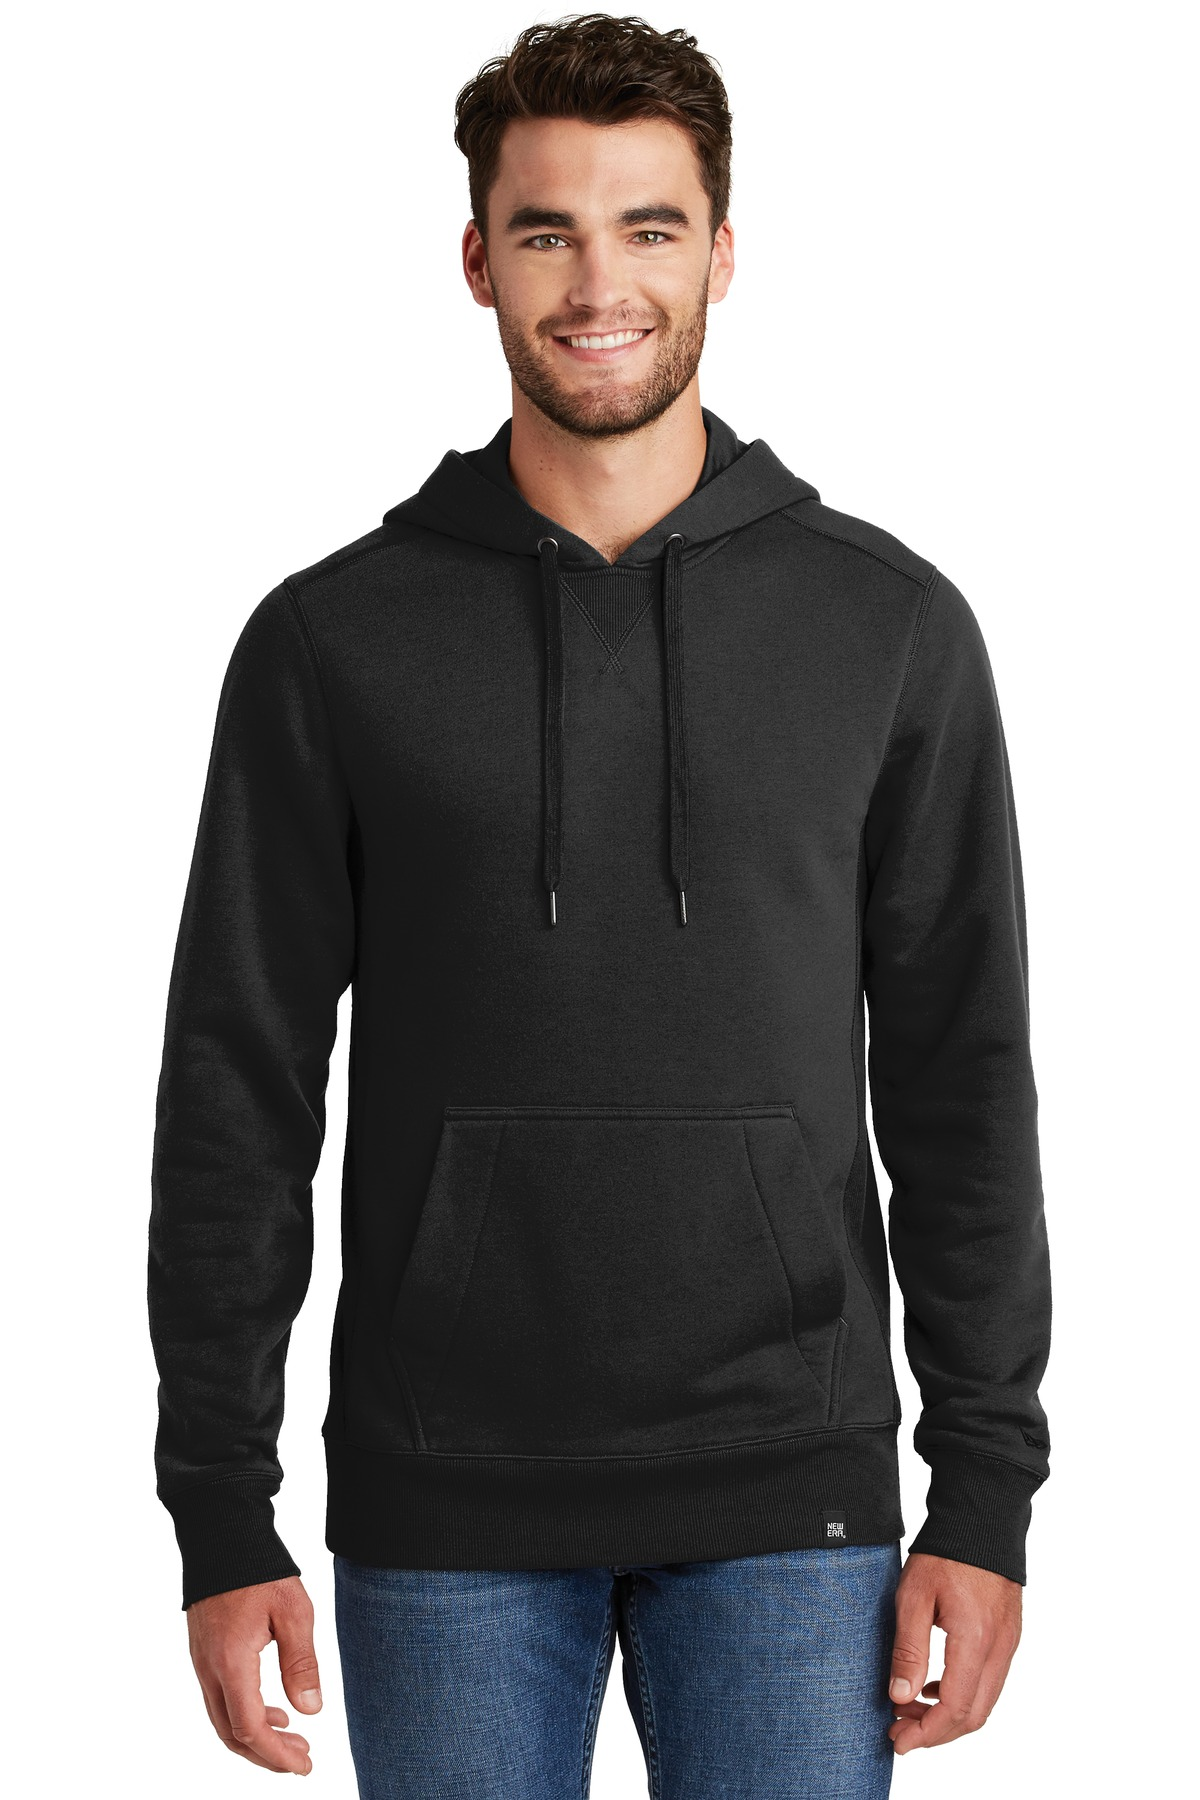 New Era  ®  French Terry Pullover Hoodie. NEA500 - Black